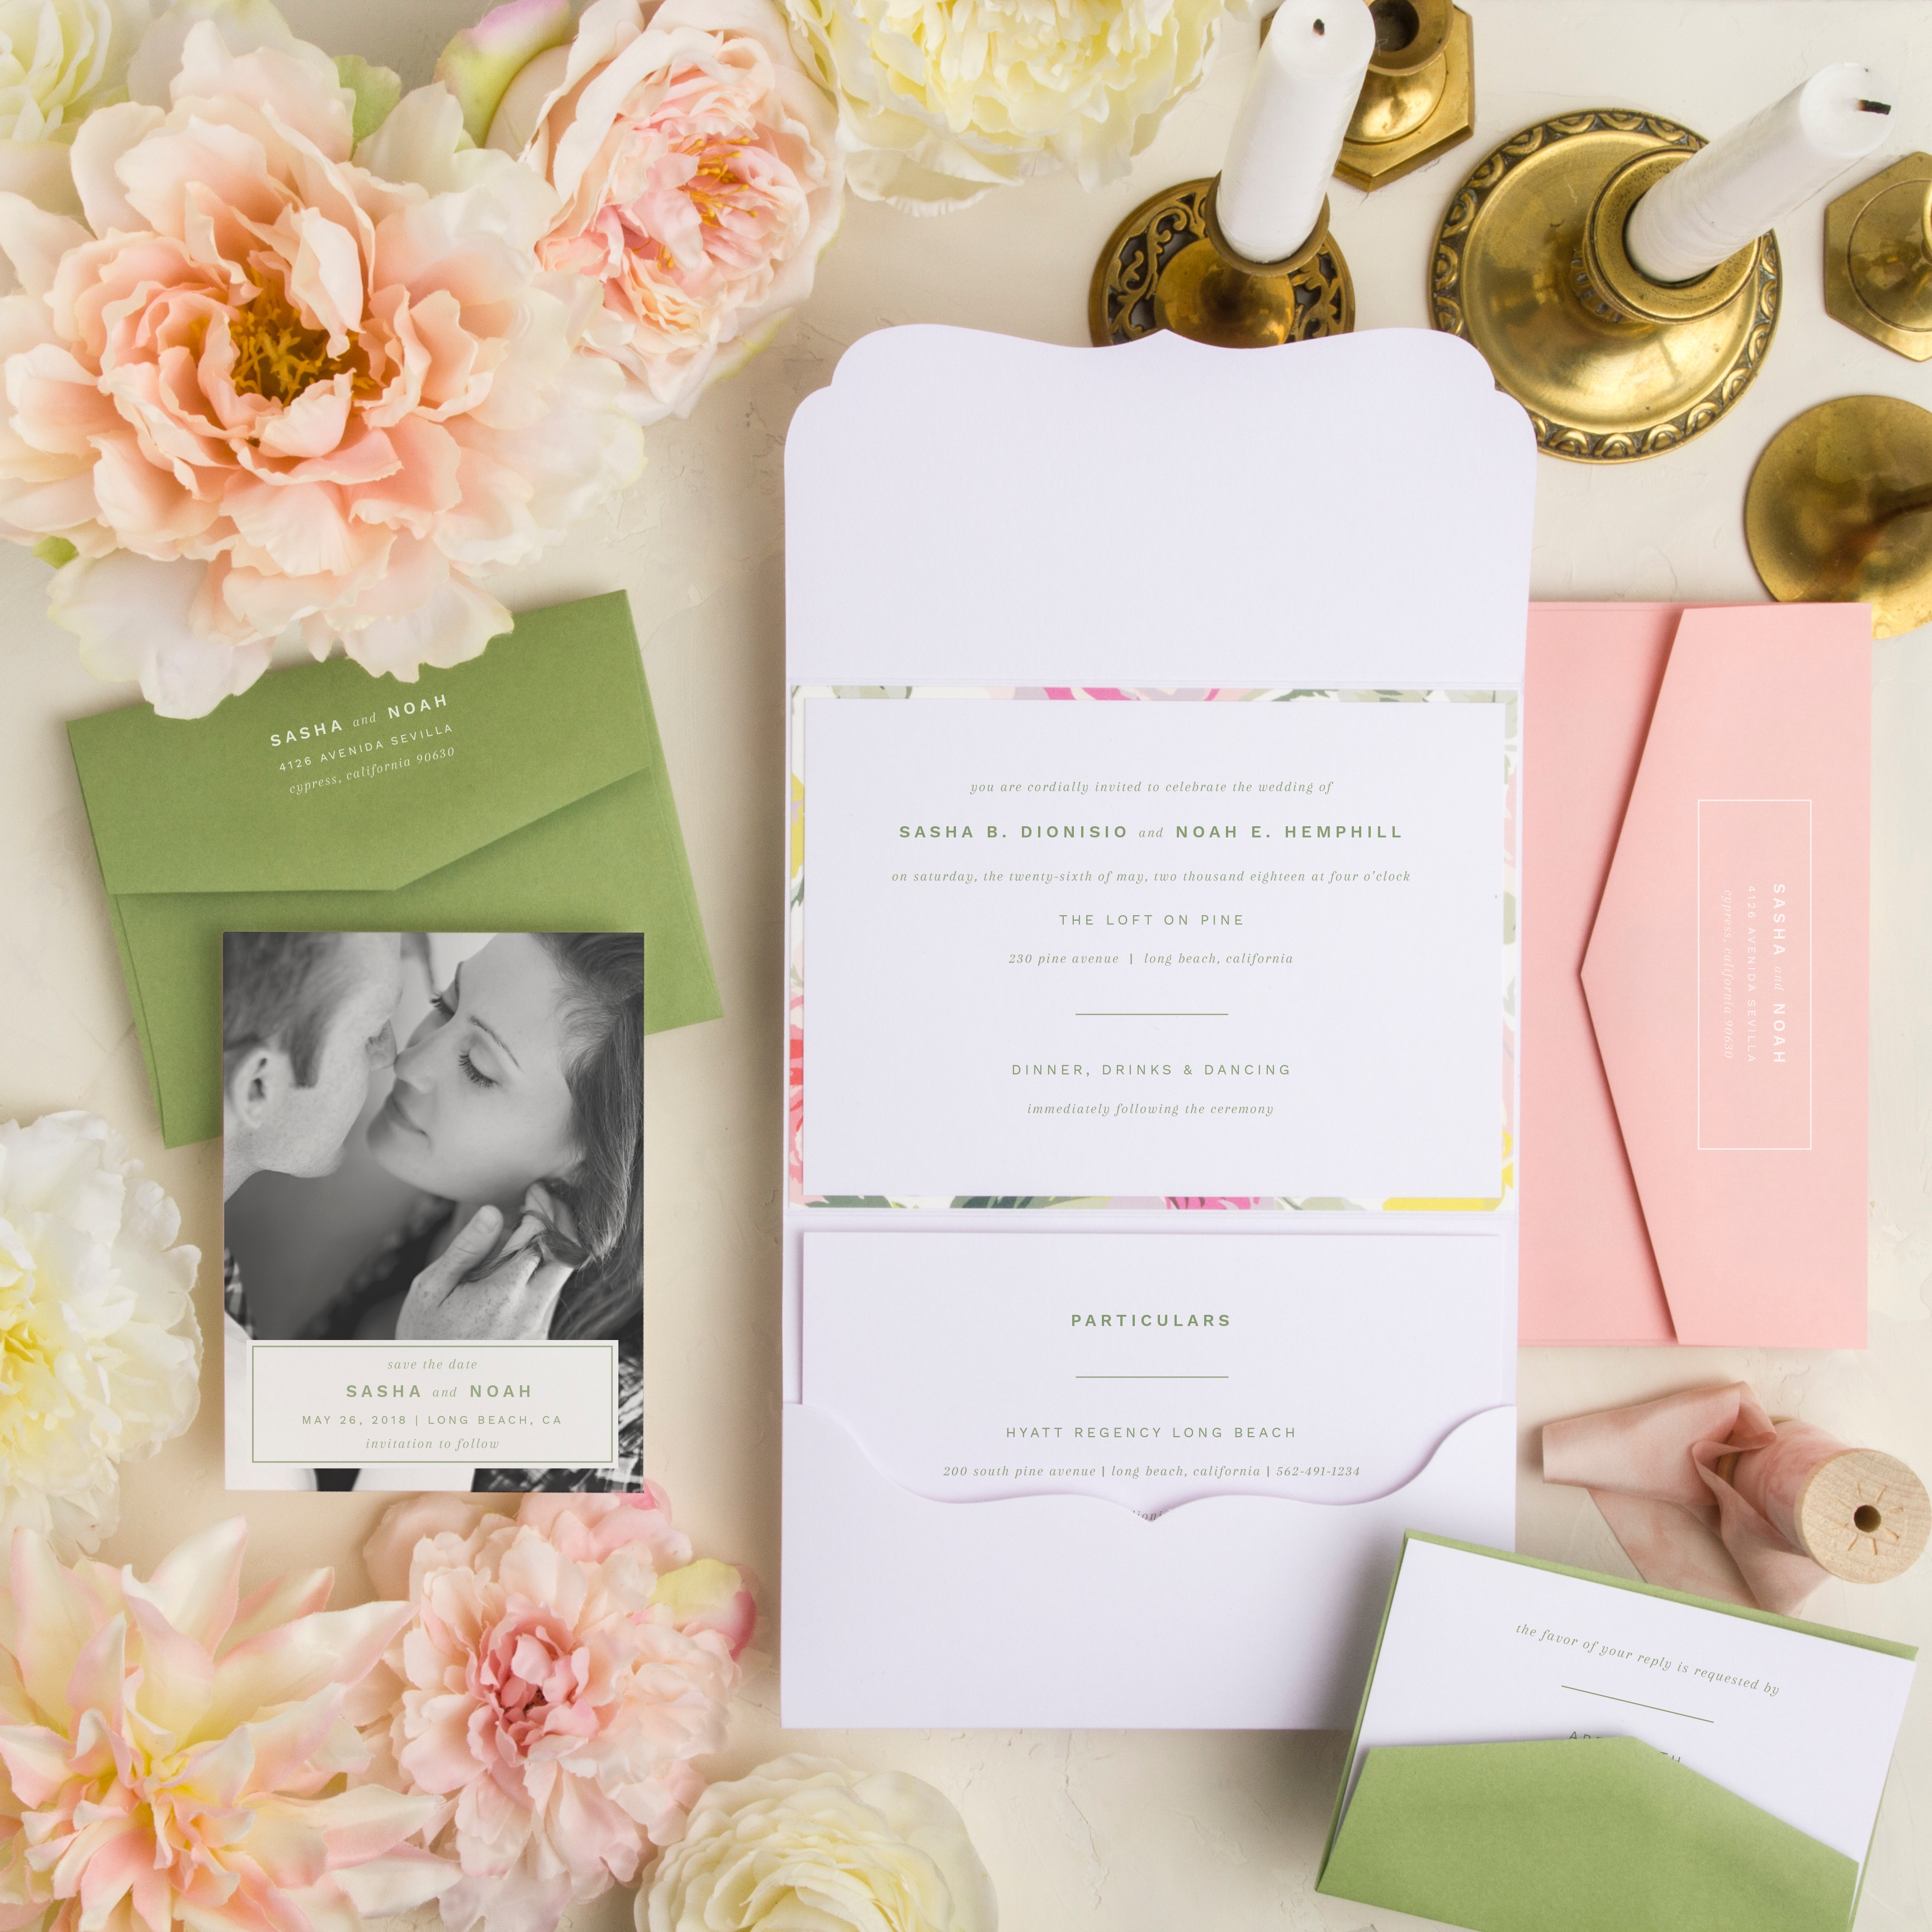 Particularly Fine pocketfold wedding invitation is just the right amount of colorful with bright citrus green and pops of peach and yellow.